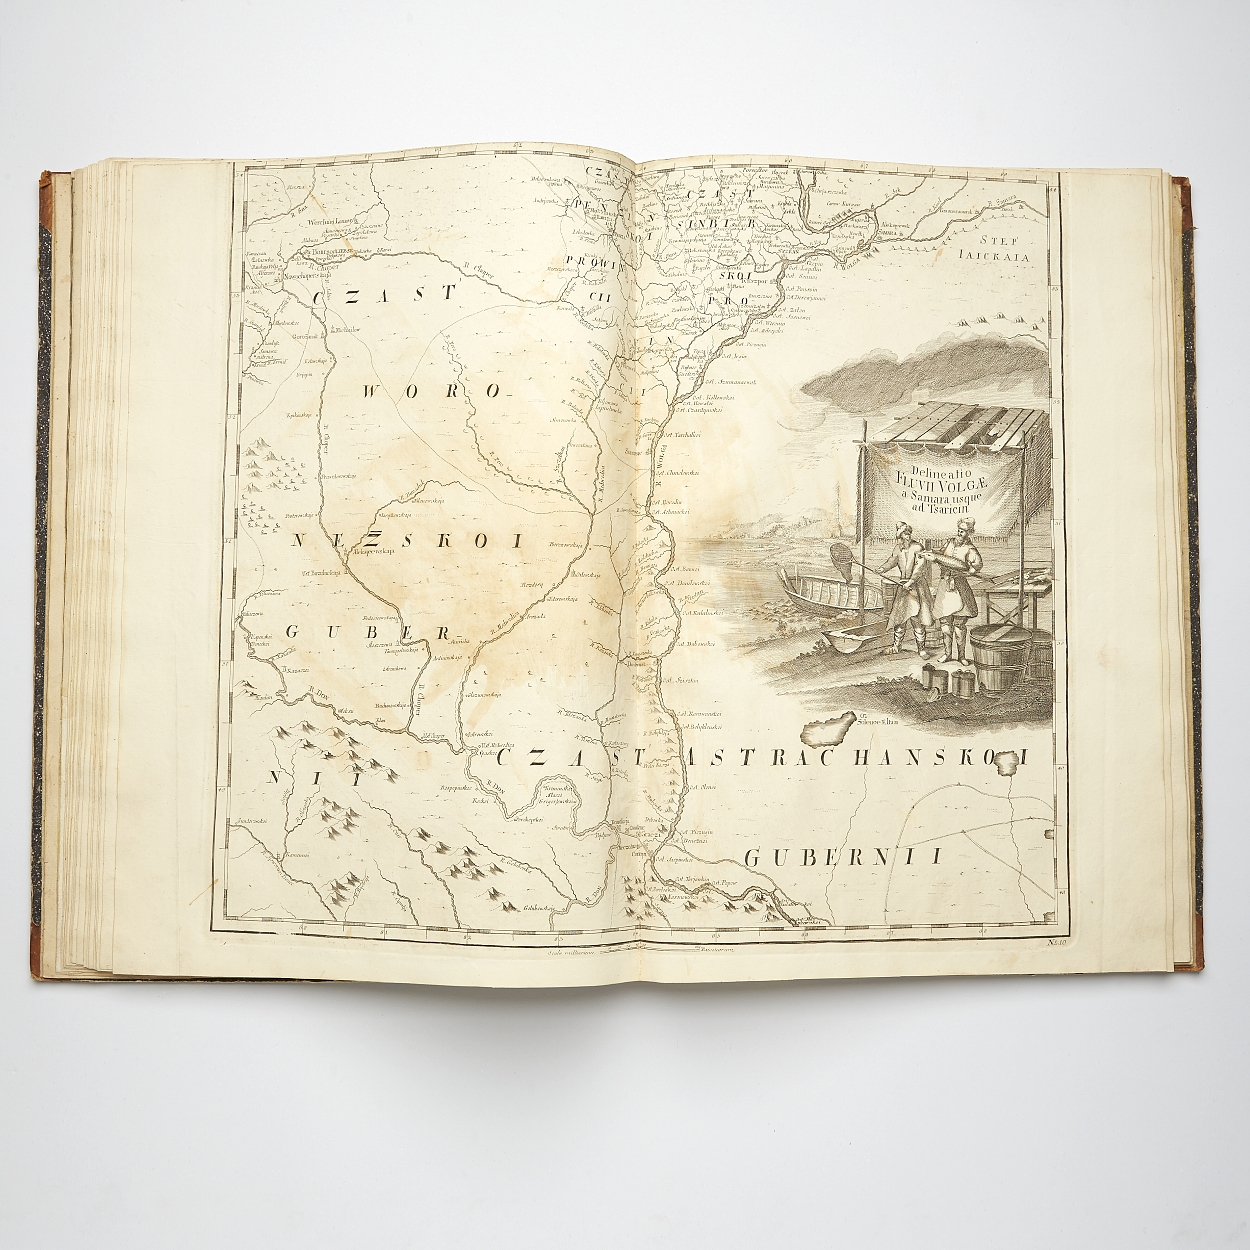 Delisle's Russian Atlas St. Petersburg 1745